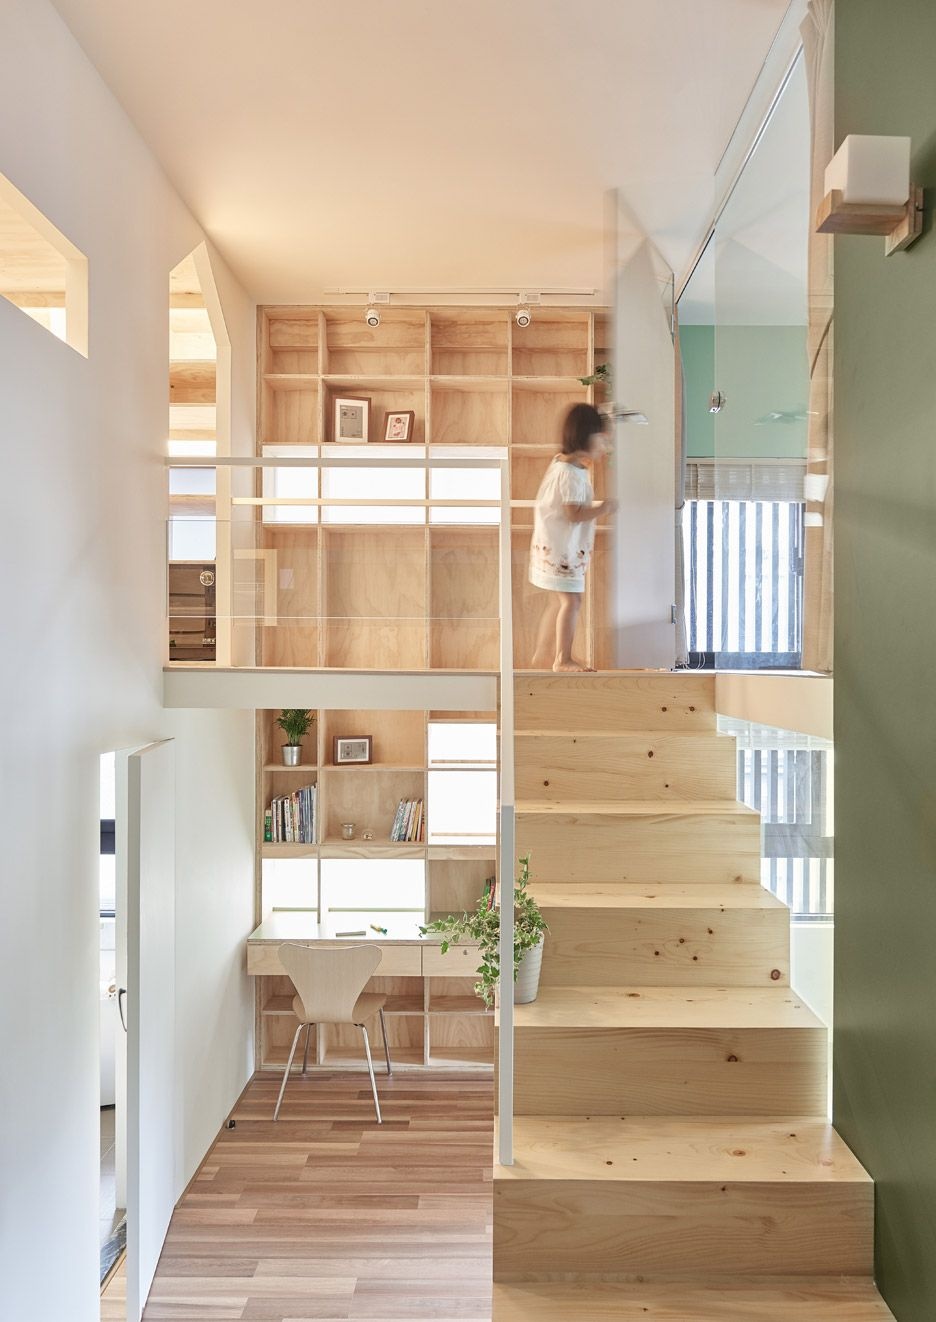 Apartment By Hao Design Has House Shaped Doors Apartment Renovation Apartment Design Futuristic Home